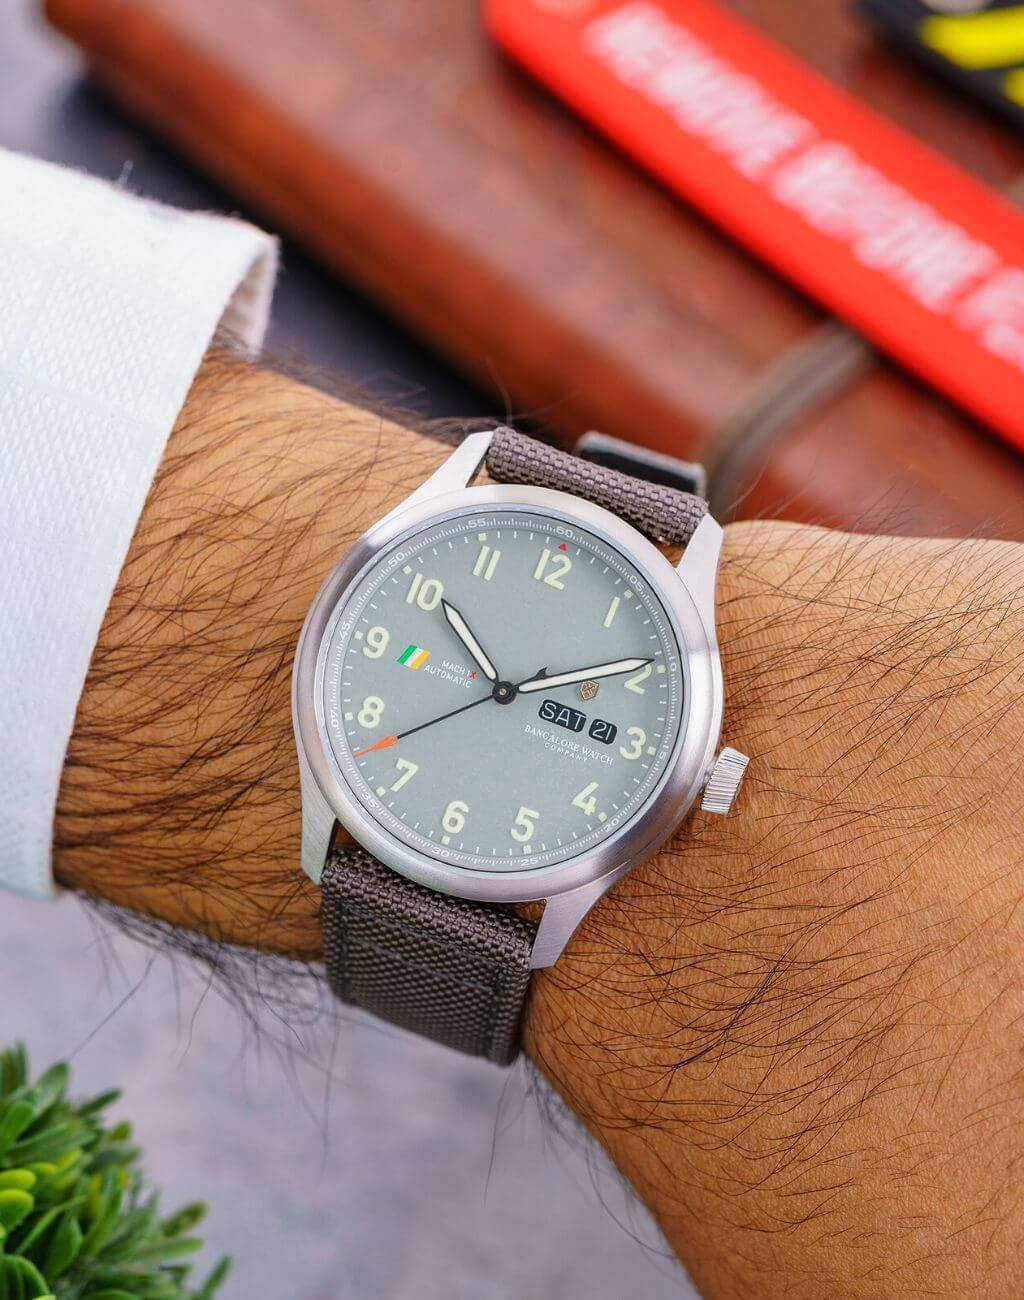 bangalore-company-watch-military-graded-andoized-alumunim